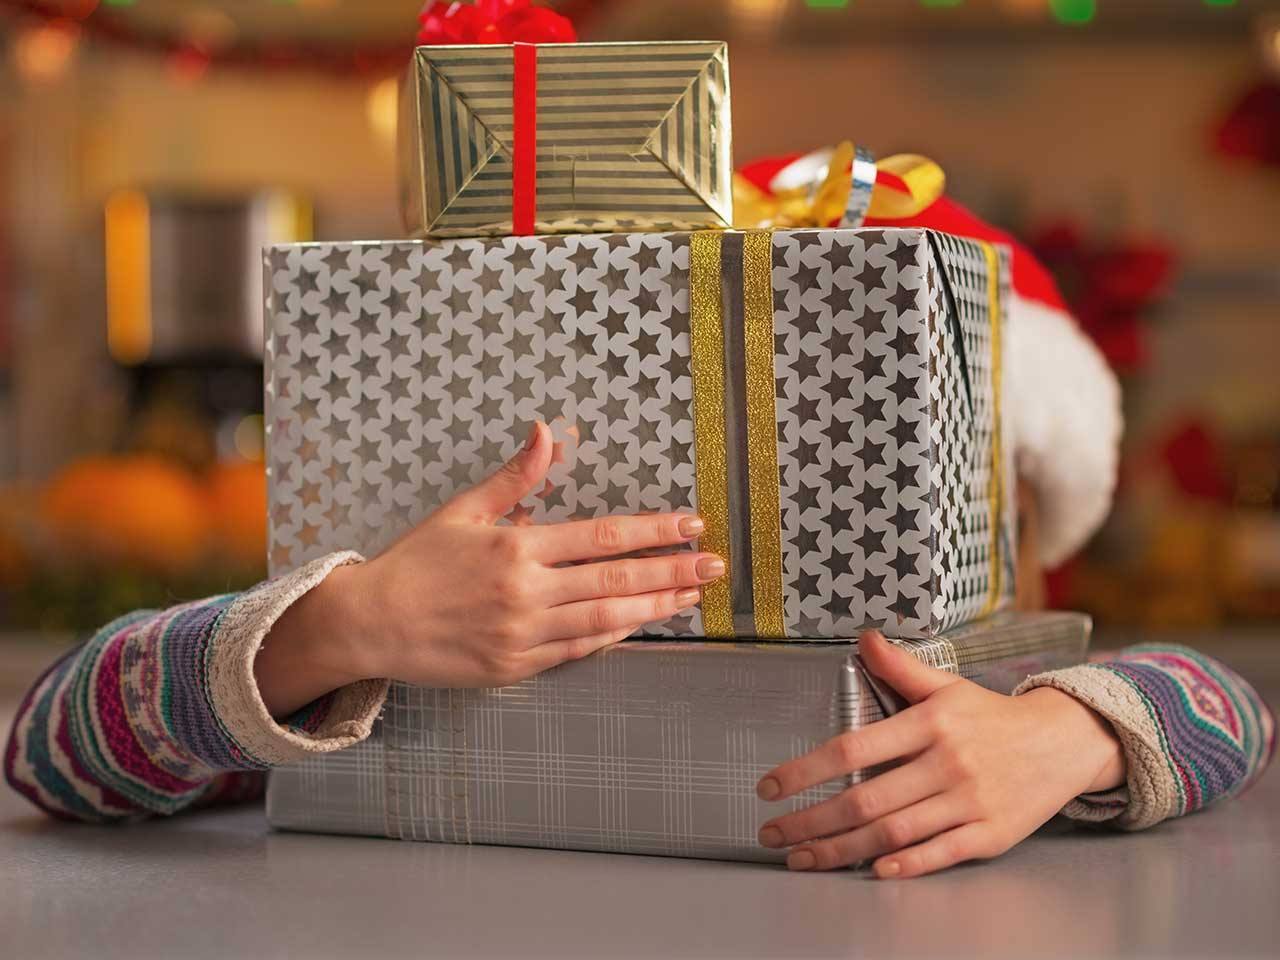 Girl hiding behind Christmas presents